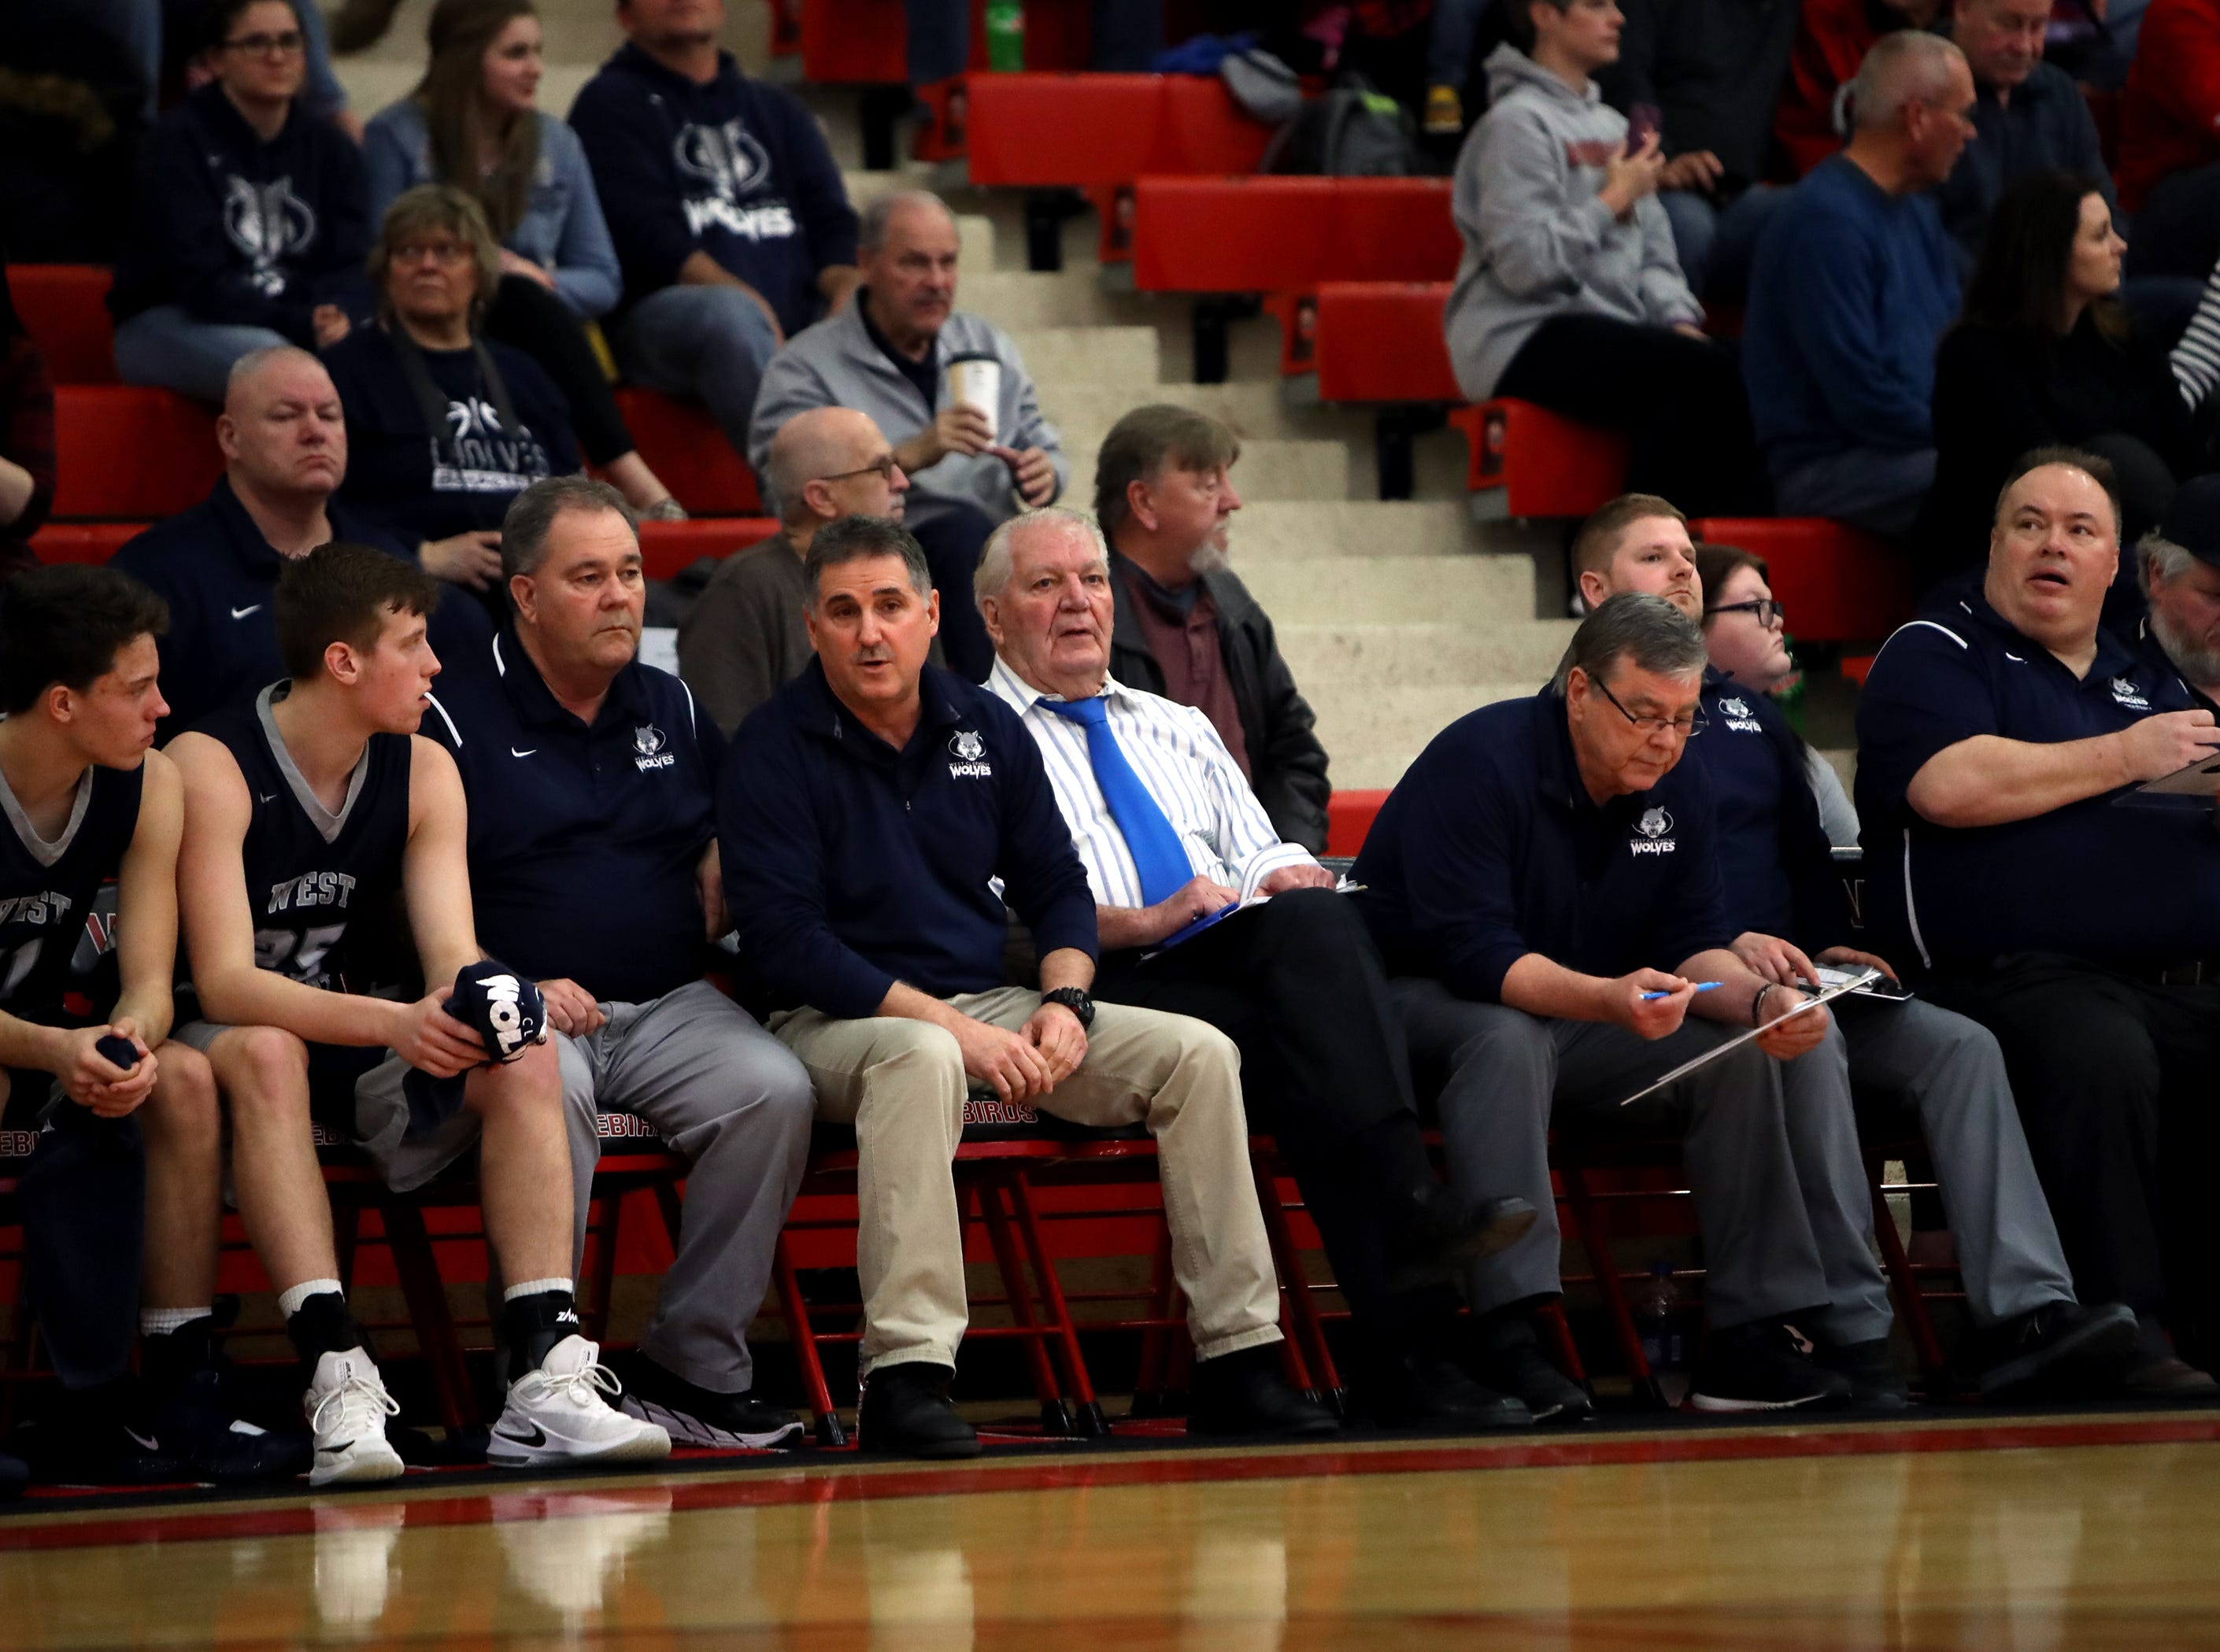 West Clermont head coach Craig Mazzaro, center, and all his assistant coaches just before the start of the Sectional playoff game against Fairfield.